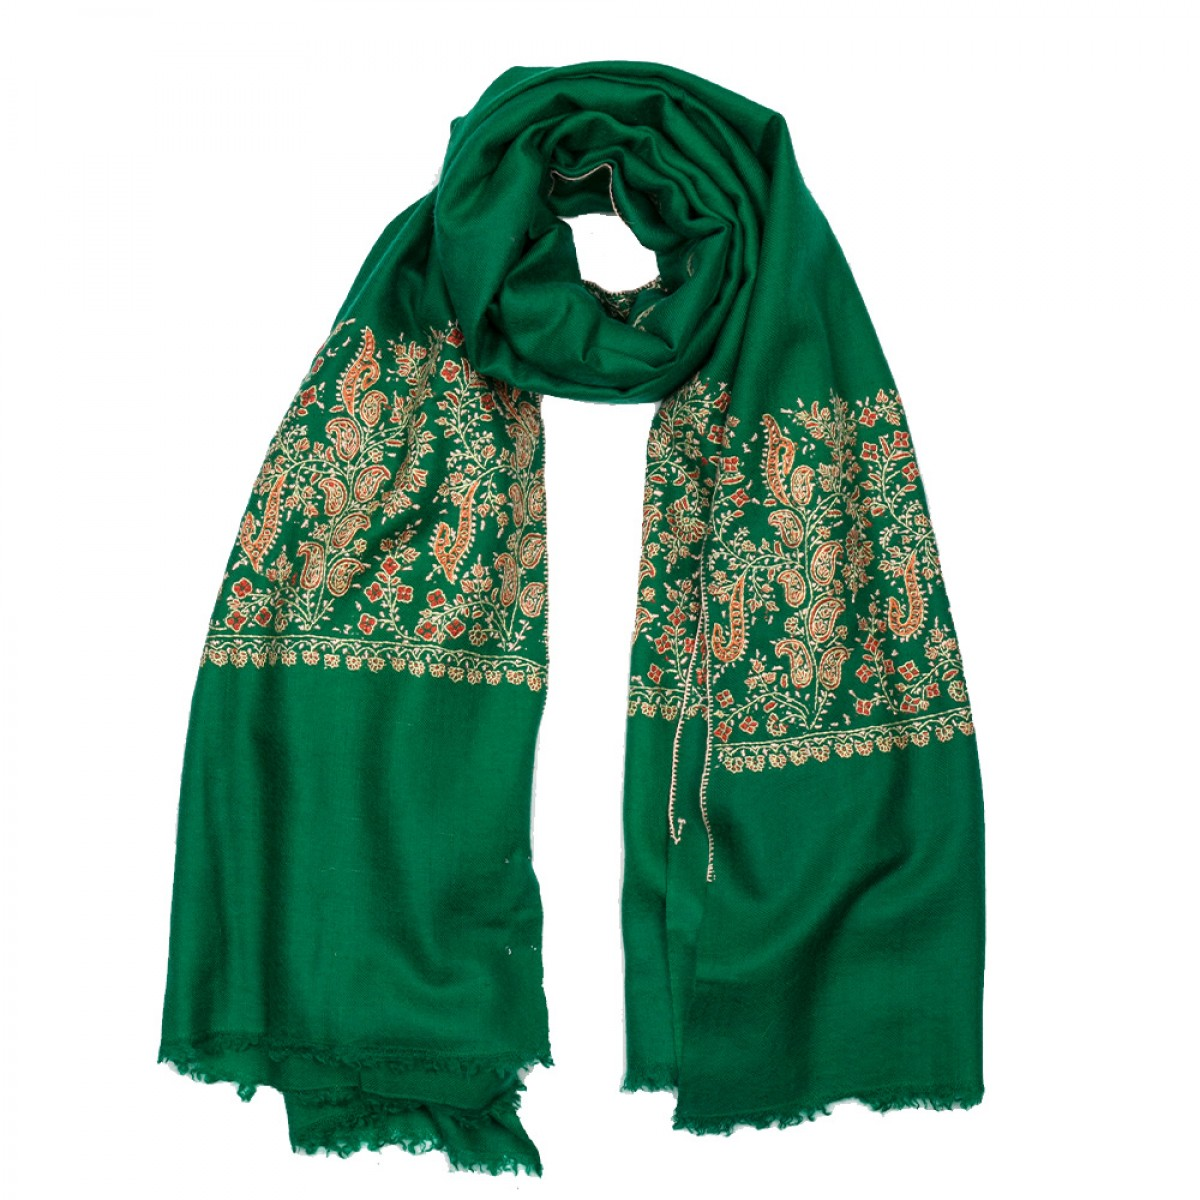 Hand Embroidered Cashmere Stole - Emerald Green